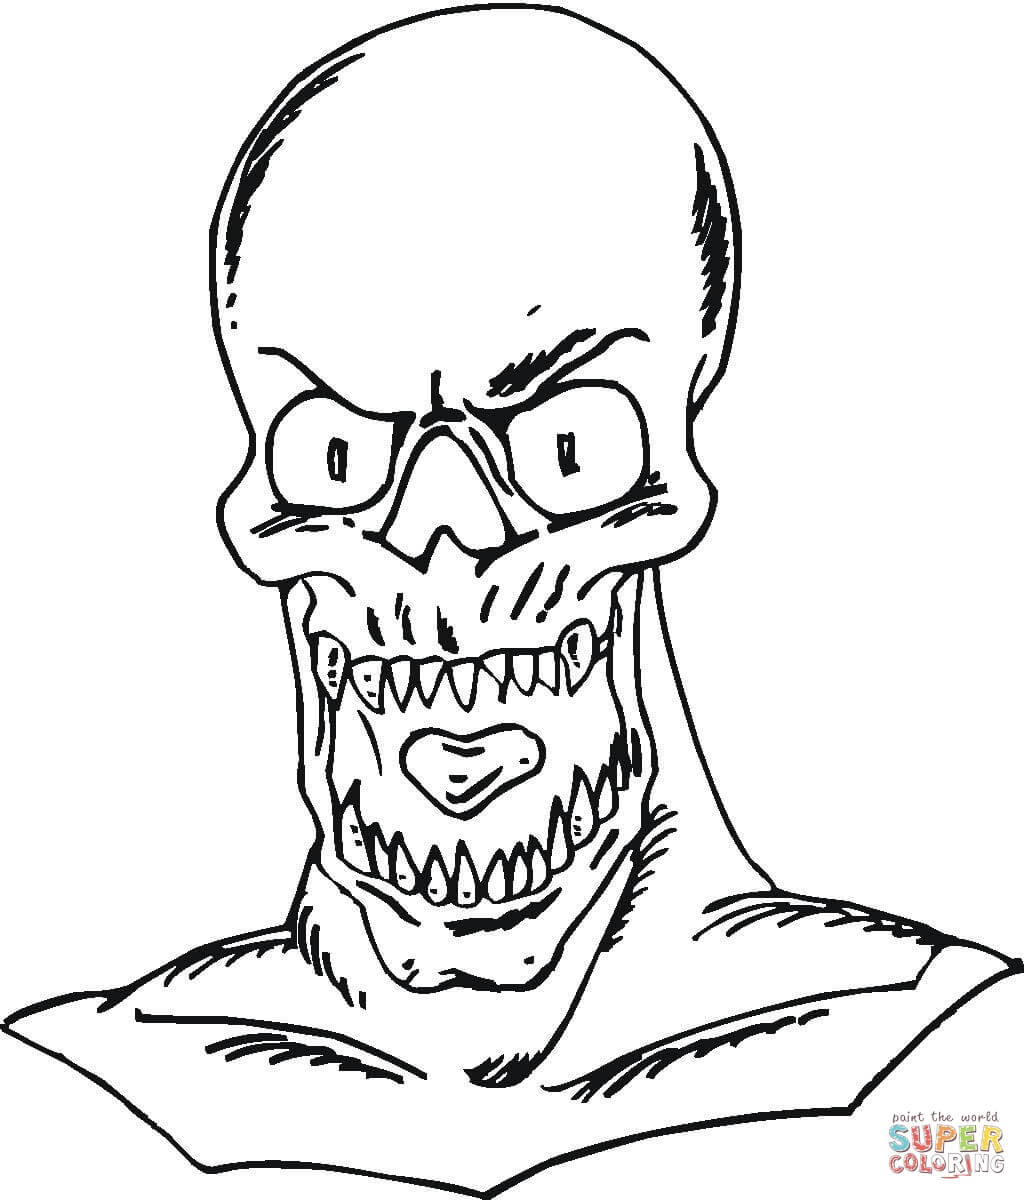 Evil Skull Smoking A Pipe Coloring Page